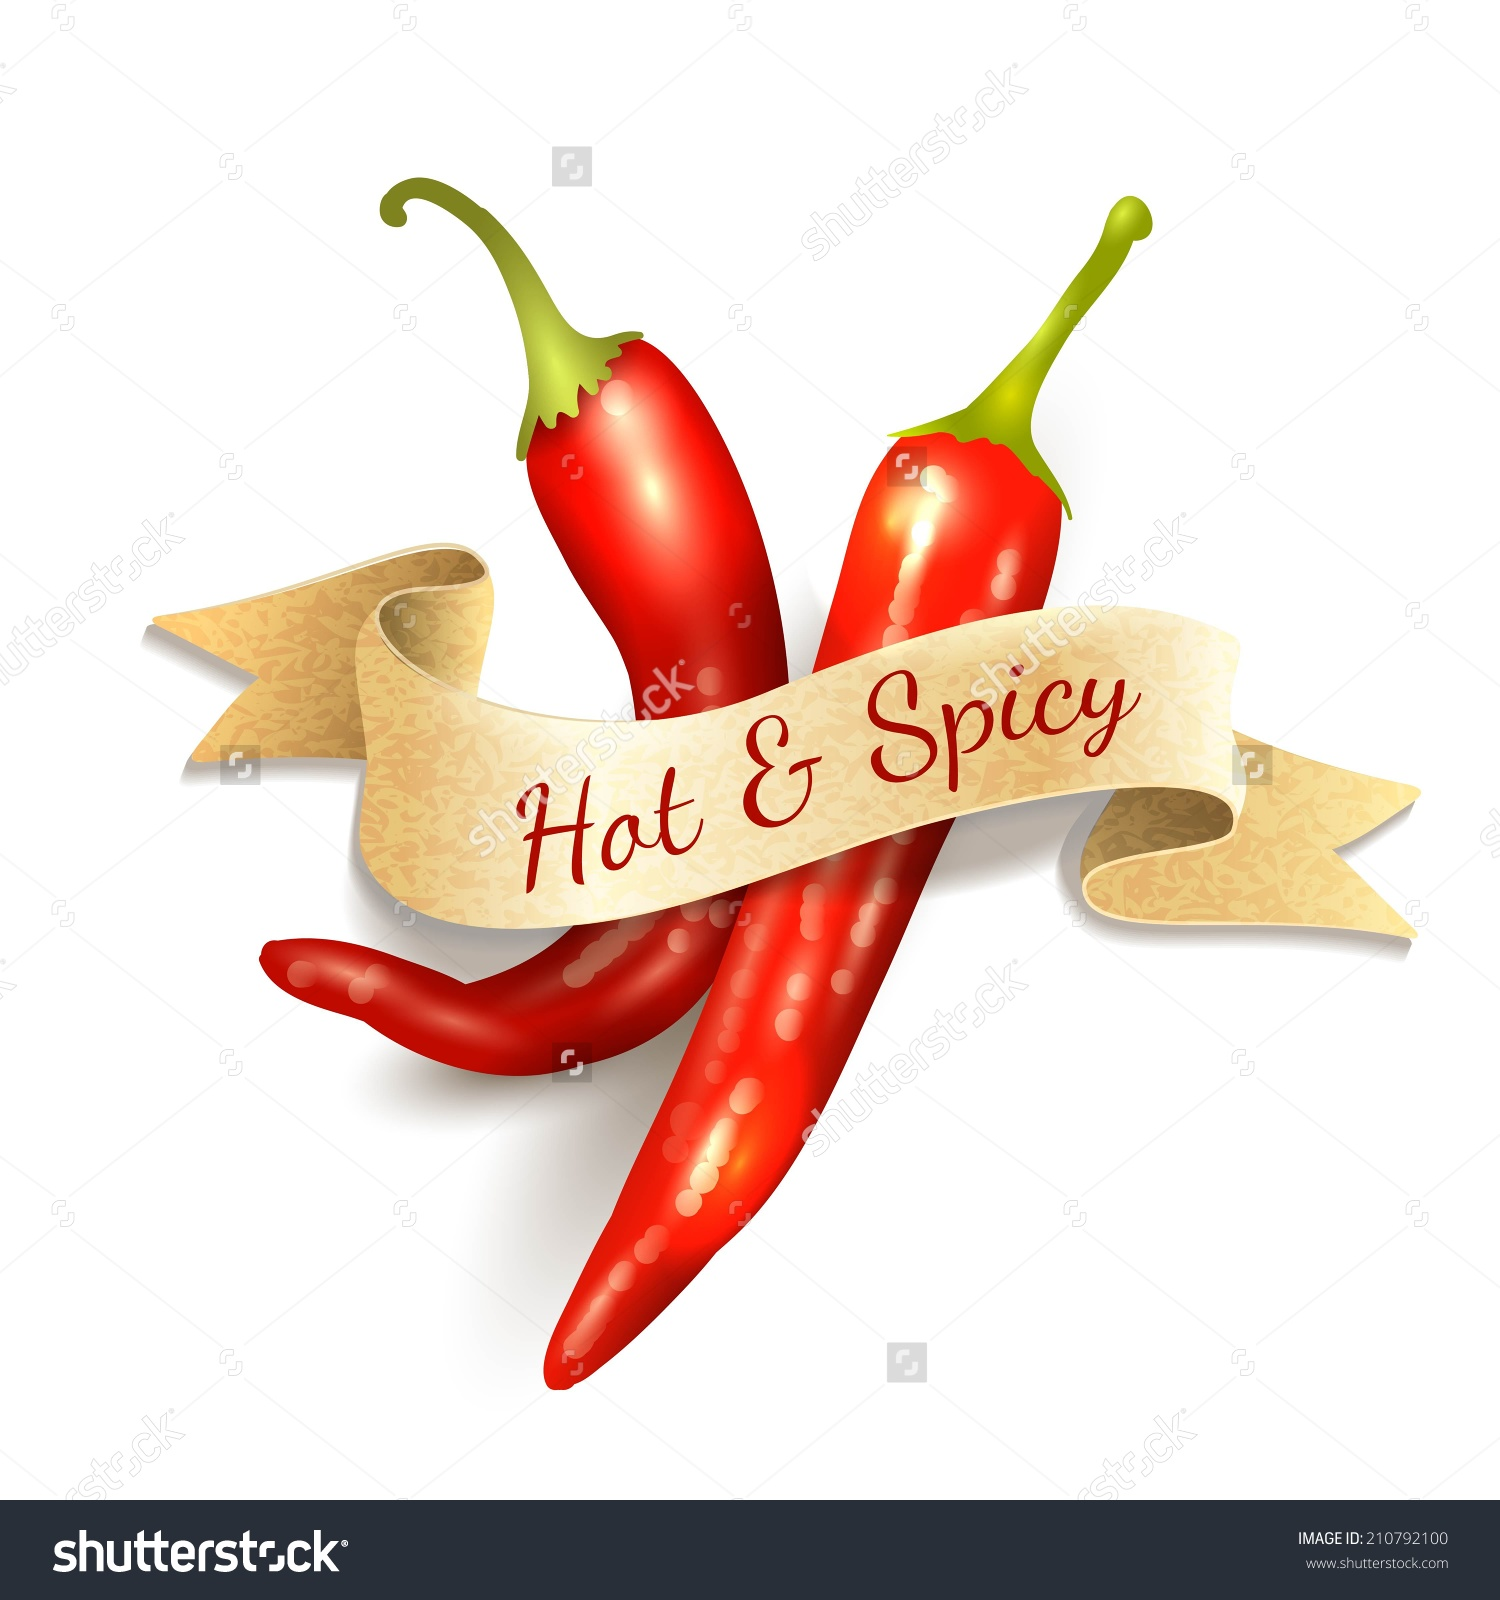 Red Chili Pepper Hot Spice Kitchen Stock Vector 210792100.